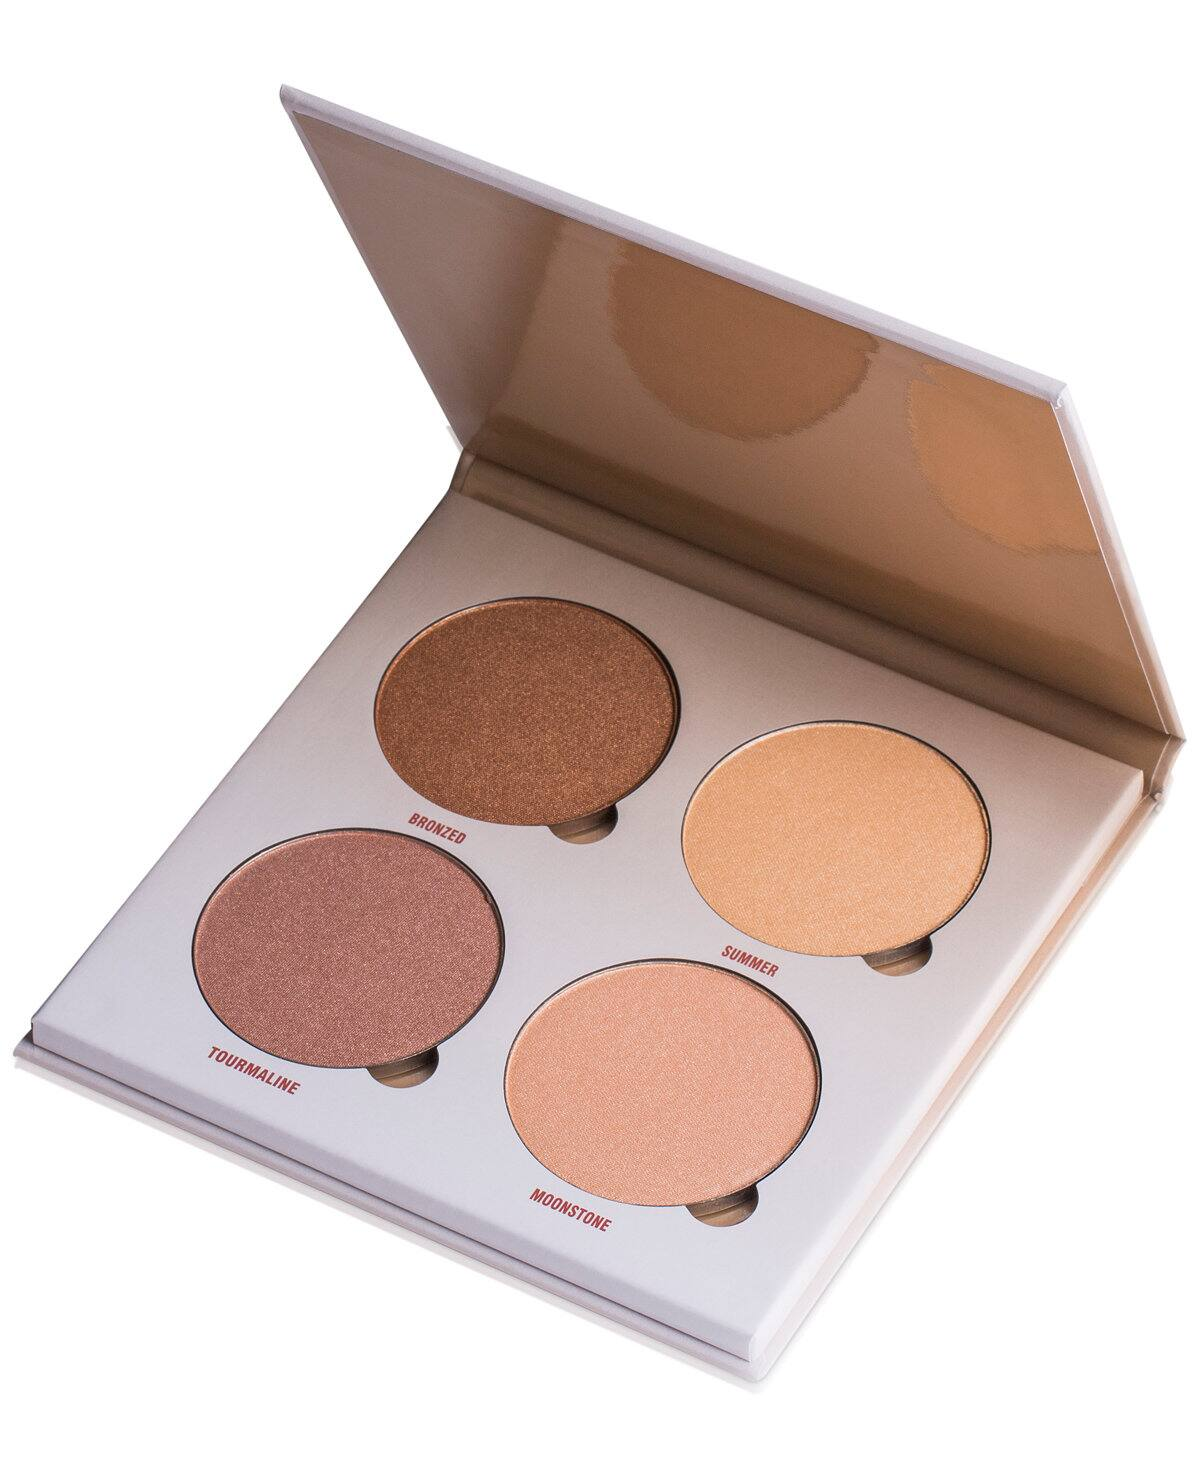 ANASTASIA BEVERLY HILLS Glow Kits $24 + Free Shipping at Macy's